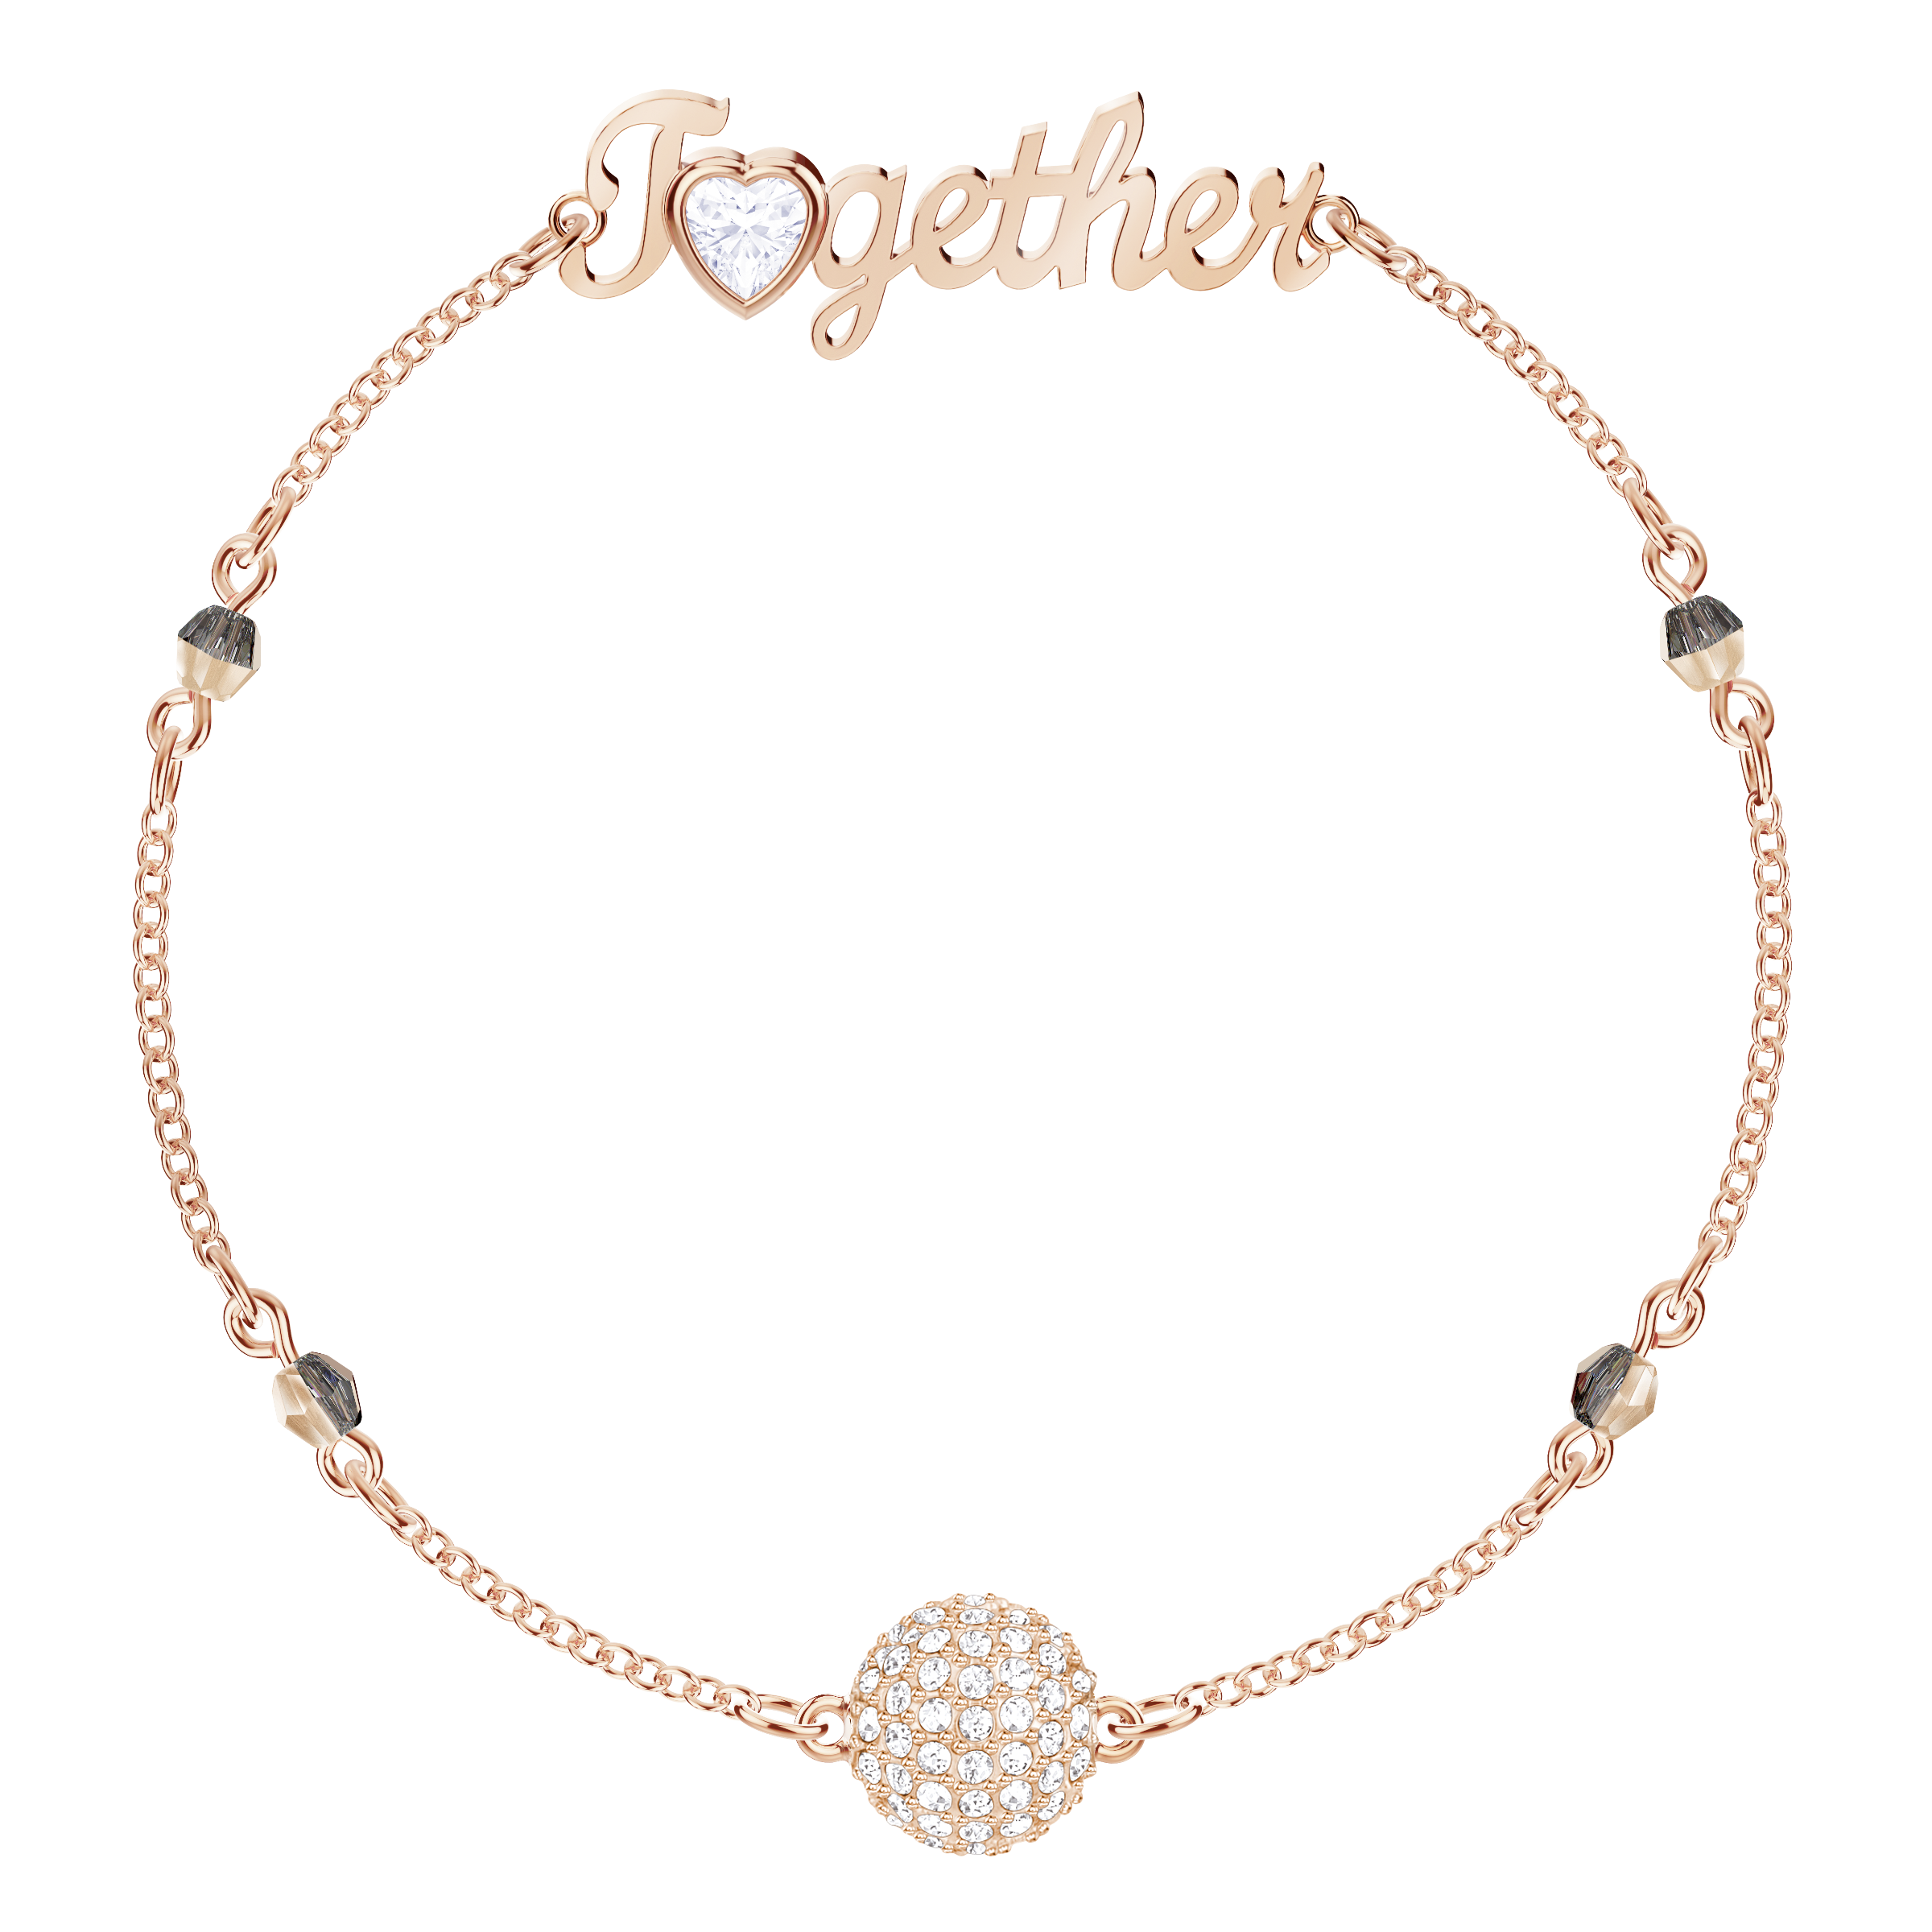 Swarovski Remix Collection Together Strand, White, Rose-gold tone plated